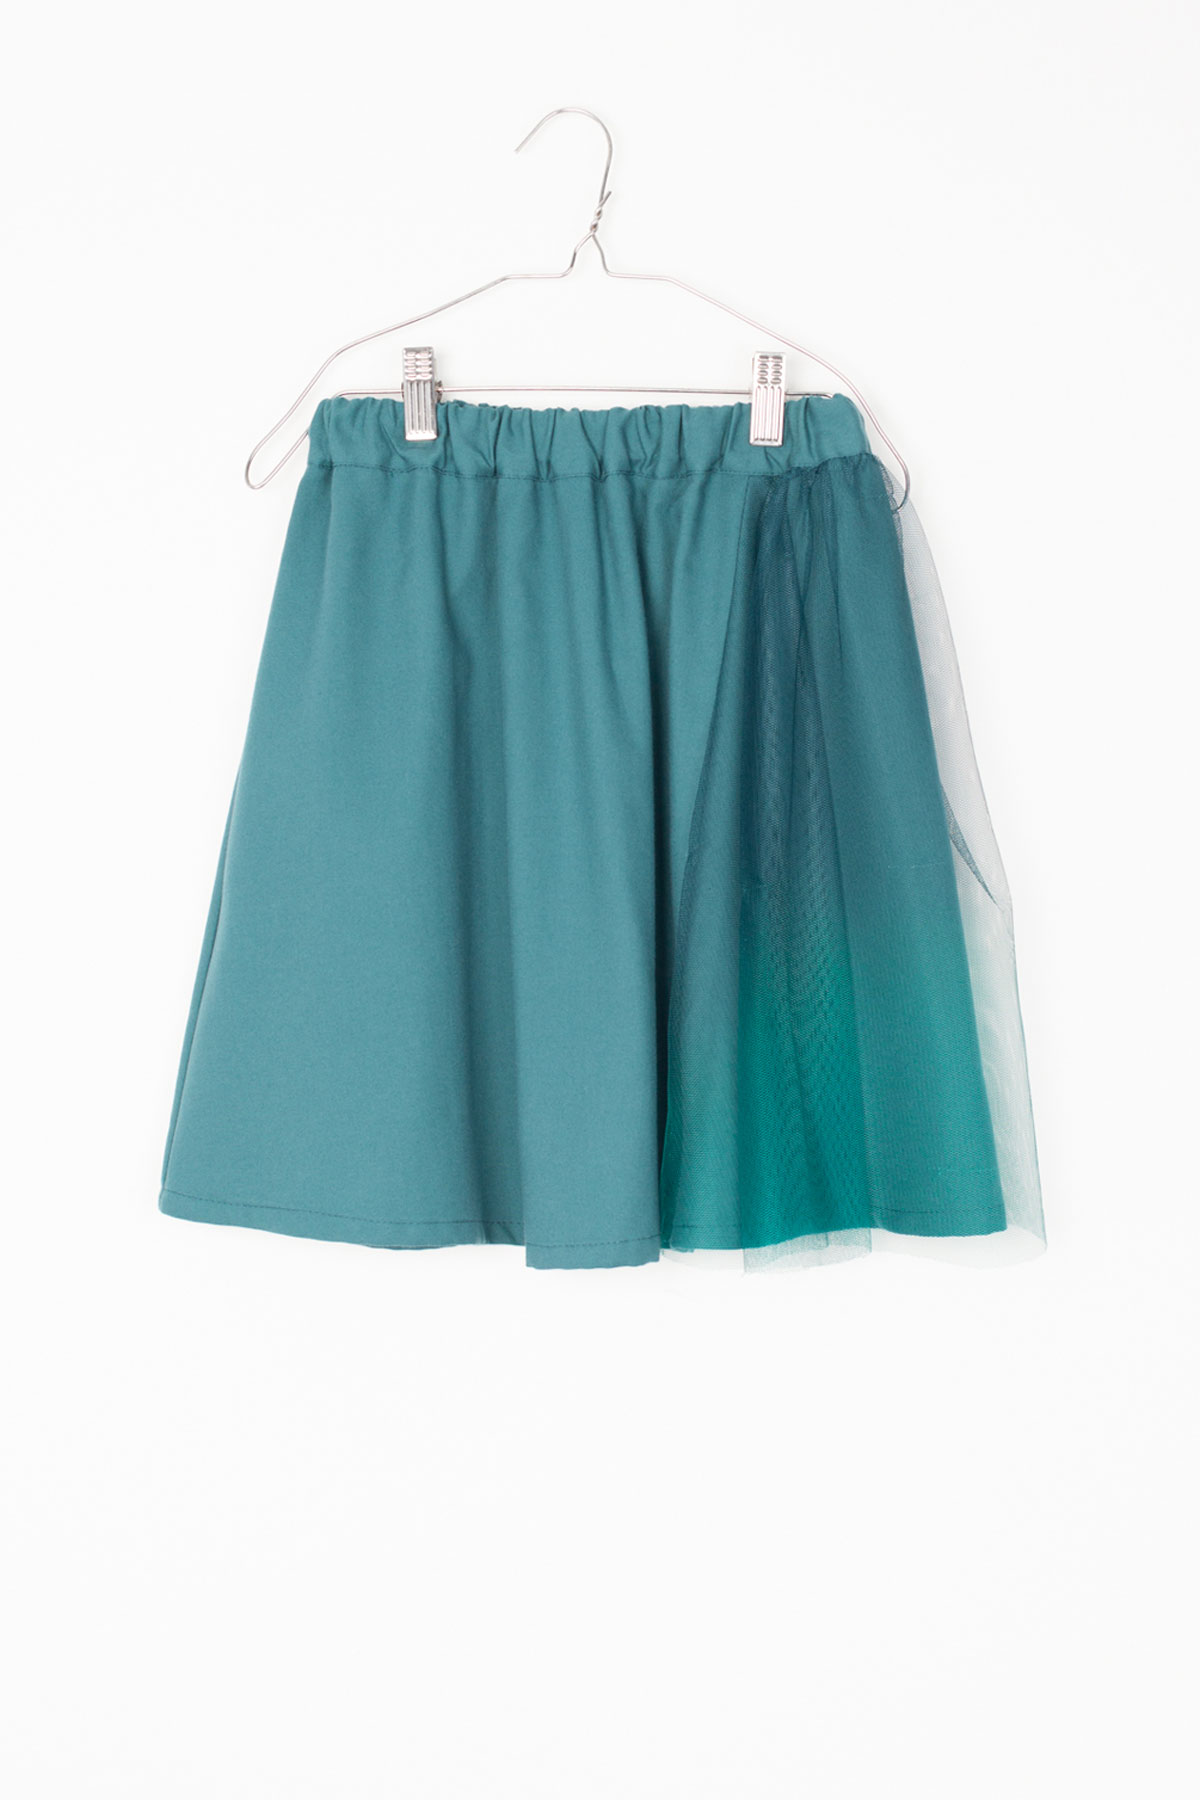 Motoreta Green - Loto Skirt Green - Clothing